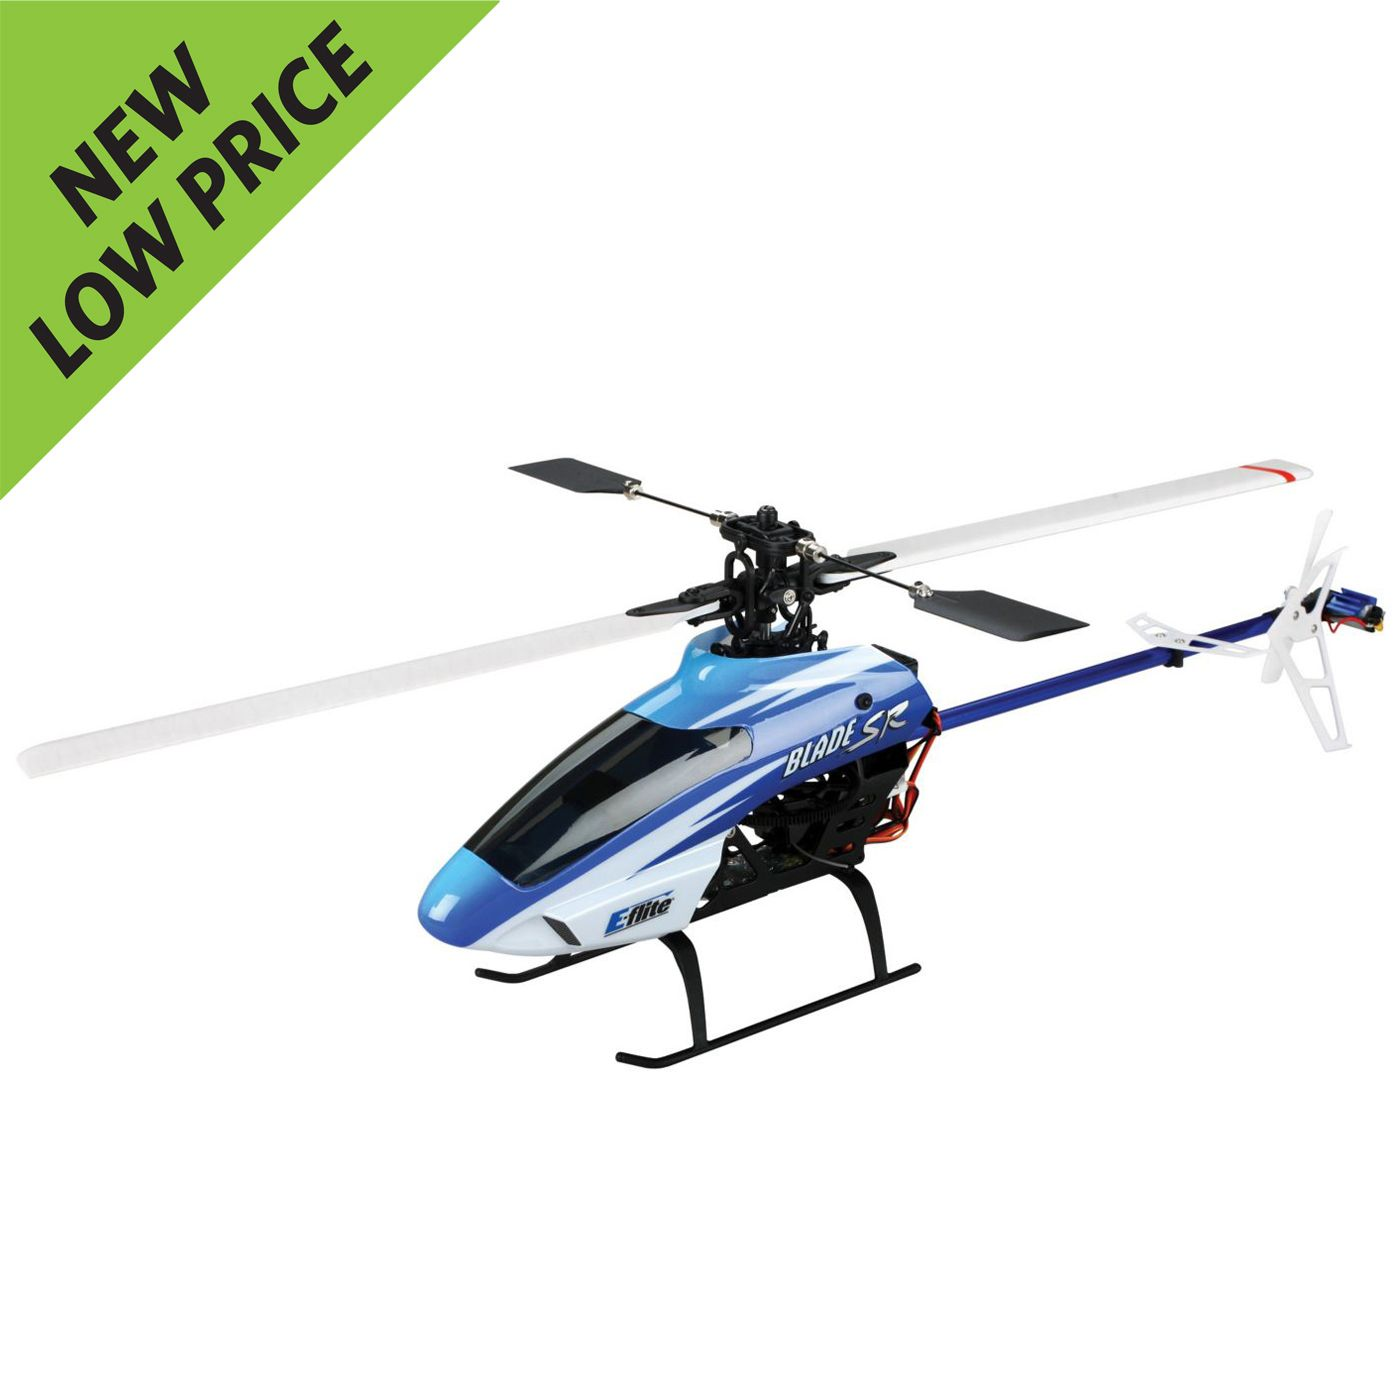 small resolution of image for blade sr rtf electric micro heli from horizonhobby